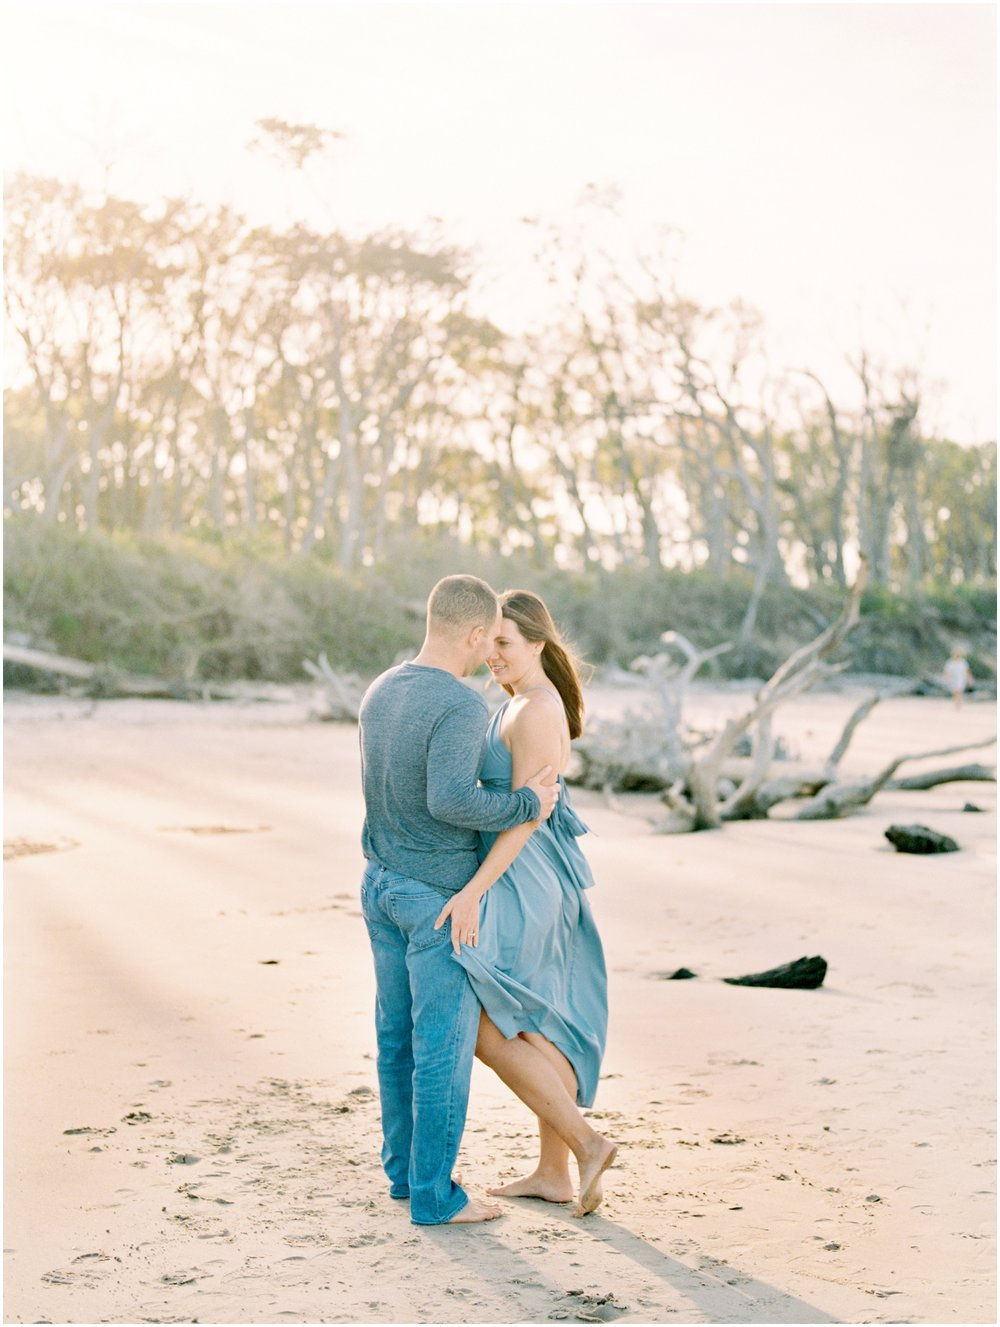 Lisa Silva Photography -Engagement Session at Big Talbot Island- Jacksonville and North East Florida Fine Art Film Photographer_0030.jpg